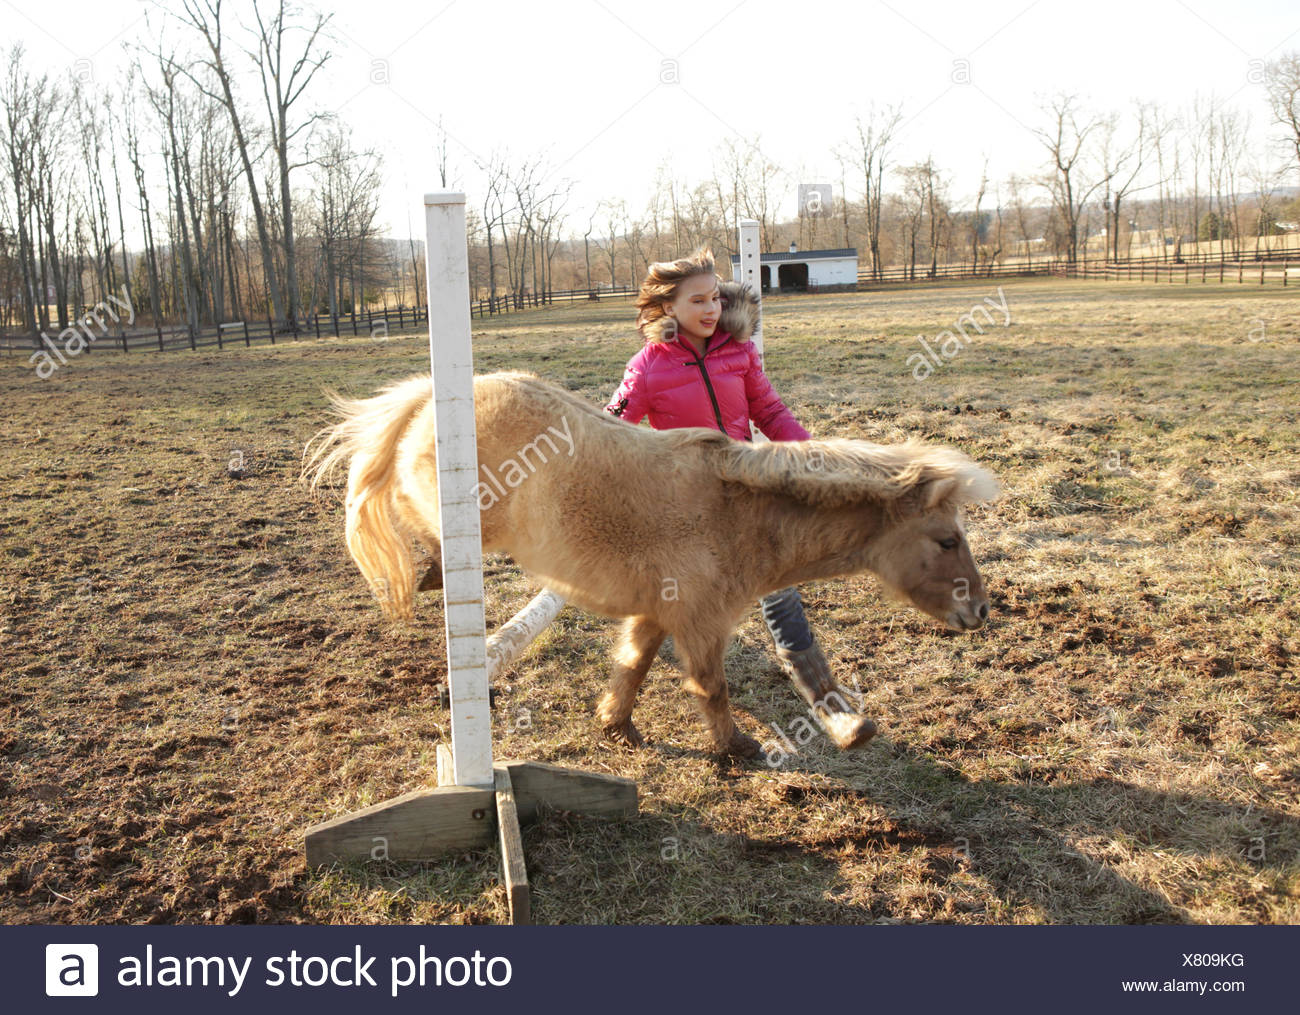 Young girl outdoors, guiding pony over bar - Stock Image